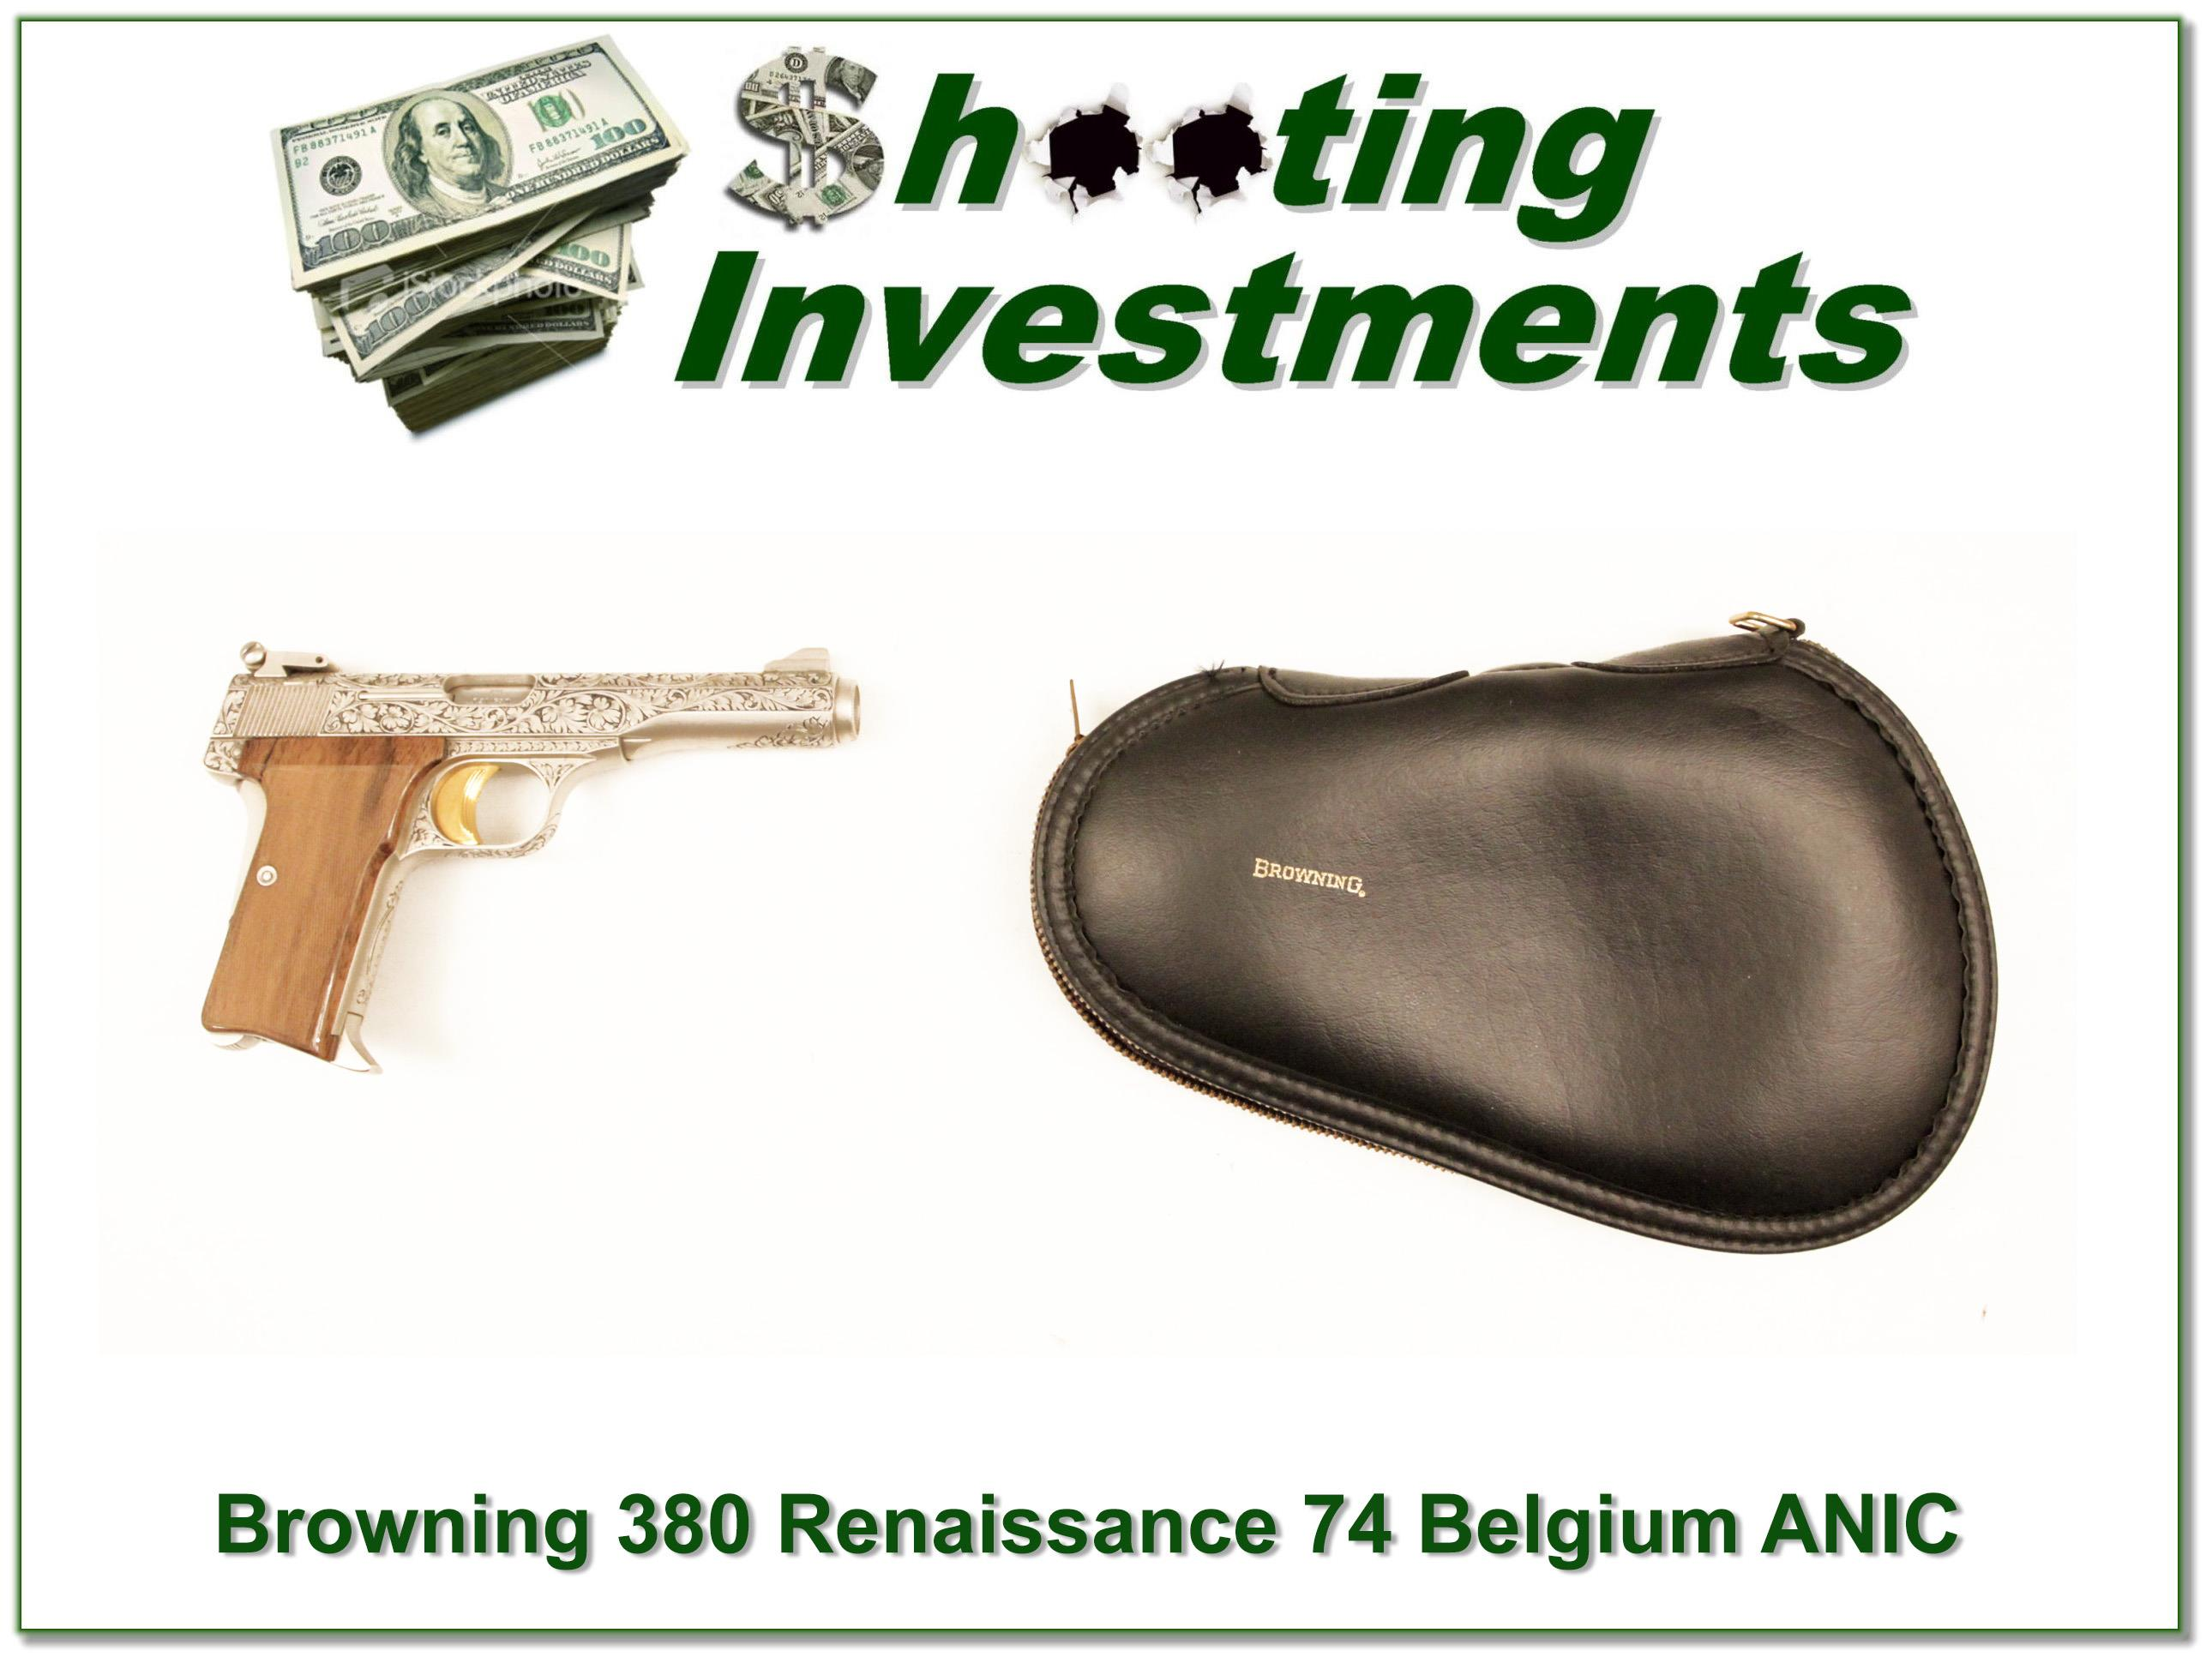 Browning 380 Renaissance 74 Belgium as new!  Guns > Pistols > Browning Pistols > Other Autos